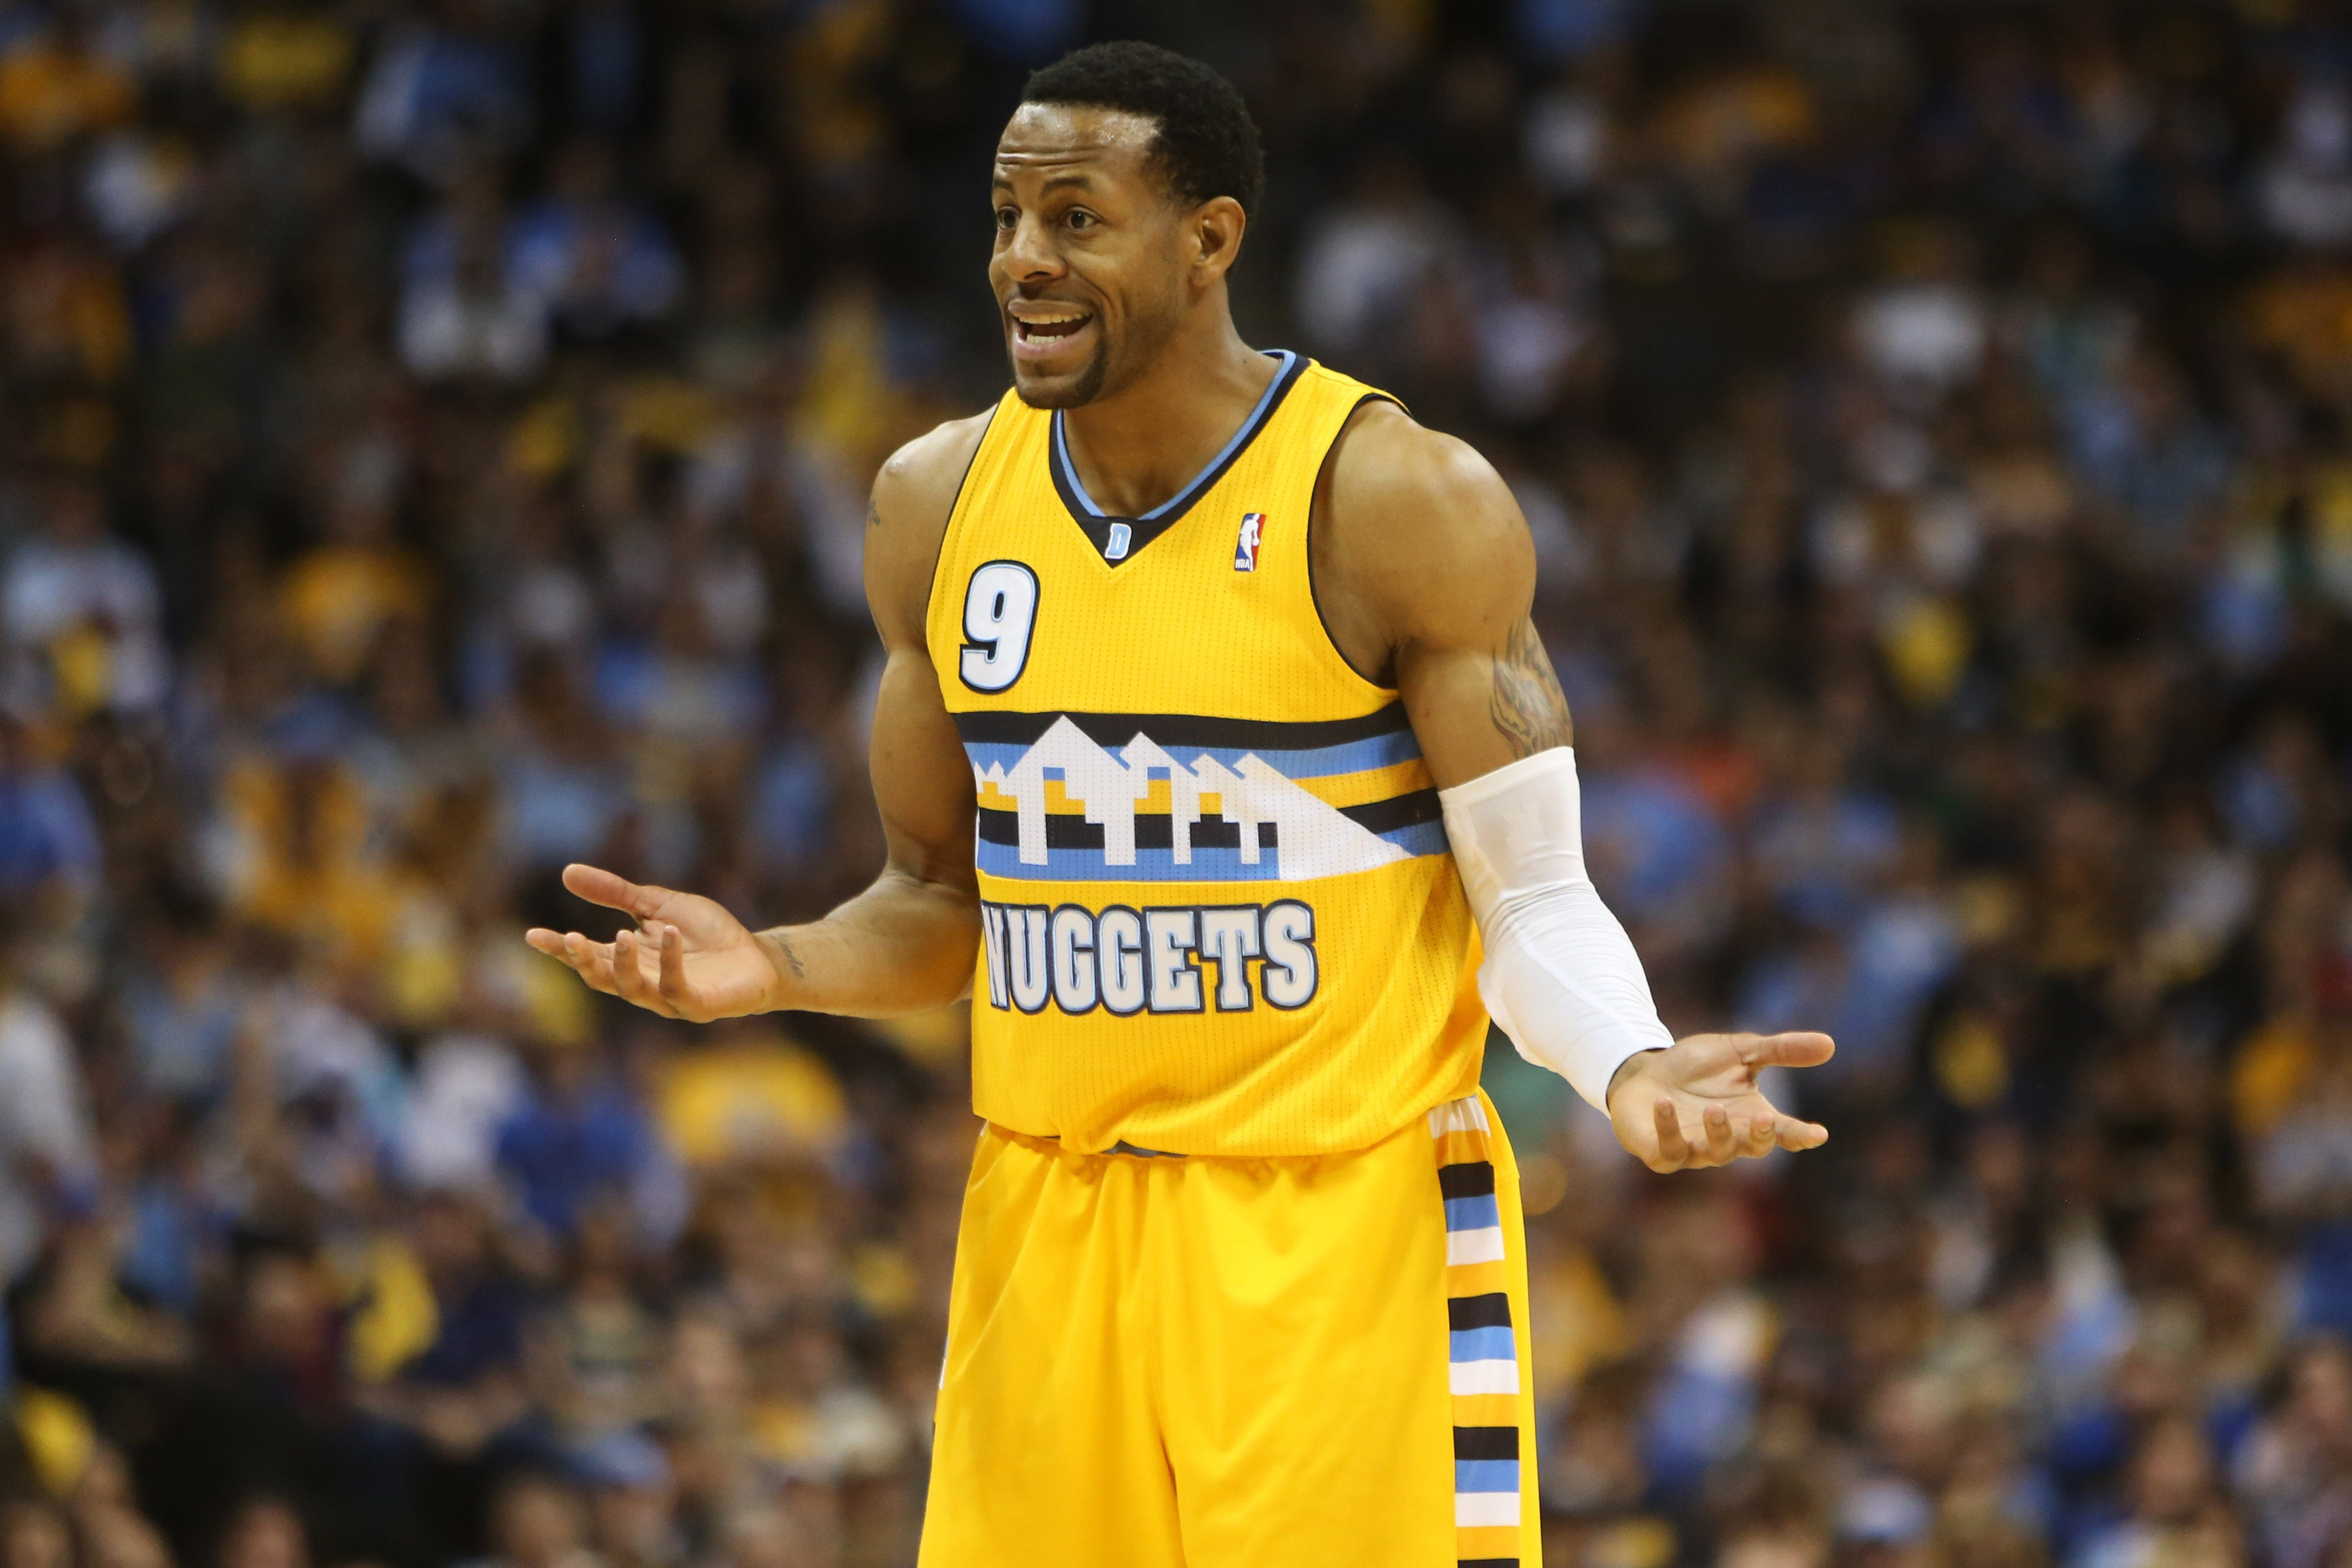 Andre Iguodala to opt out of contract, become free agent, according to report